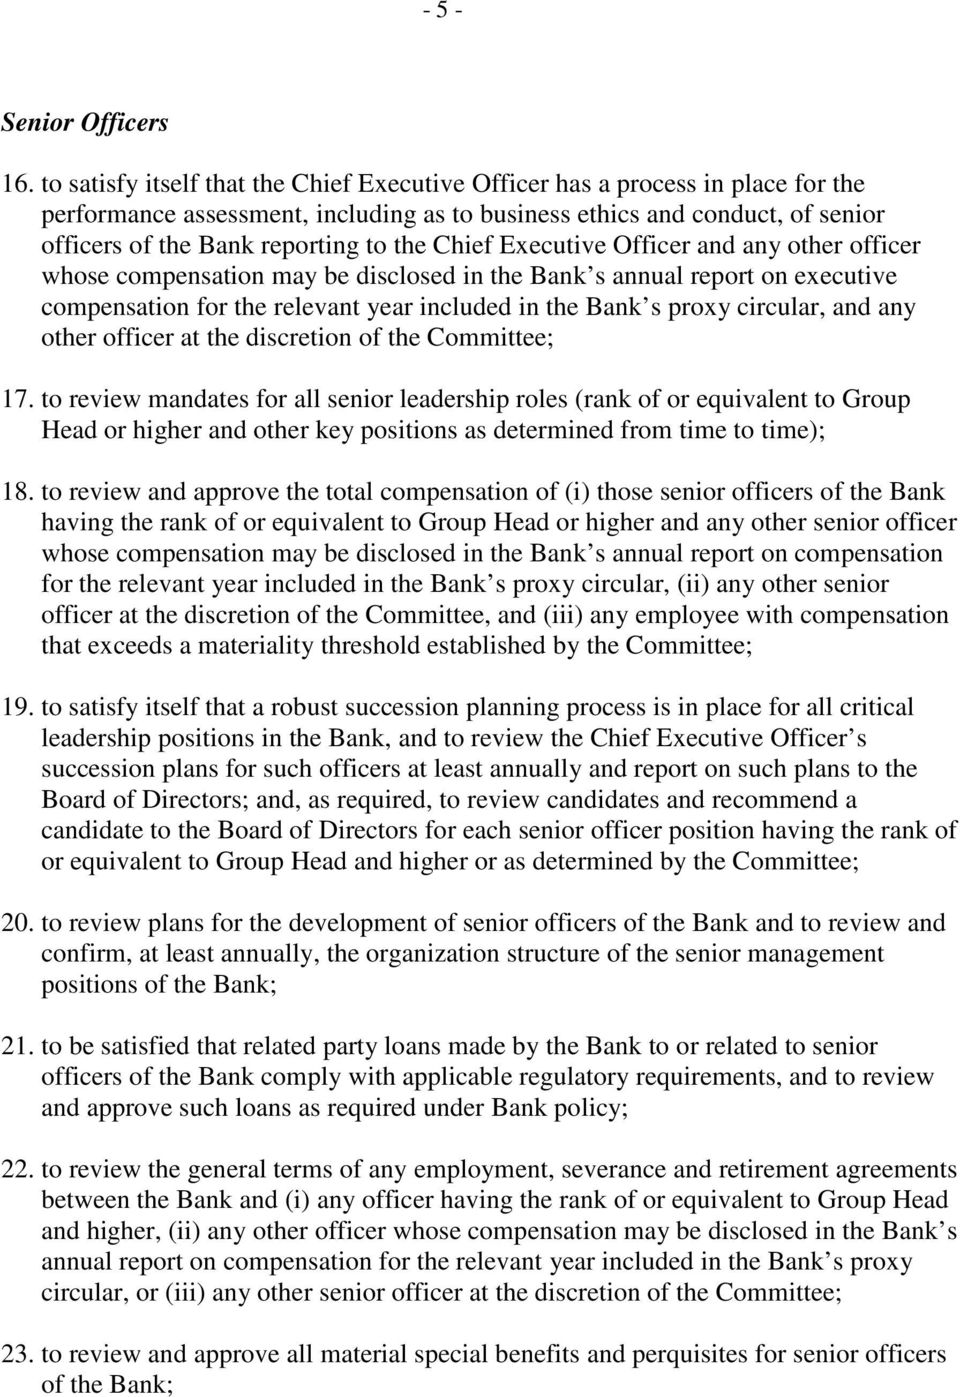 Chief Executive Officer and any other officer whose compensation may be disclosed in the Bank s annual report on executive compensation for the relevant year included in the Bank s proxy circular,